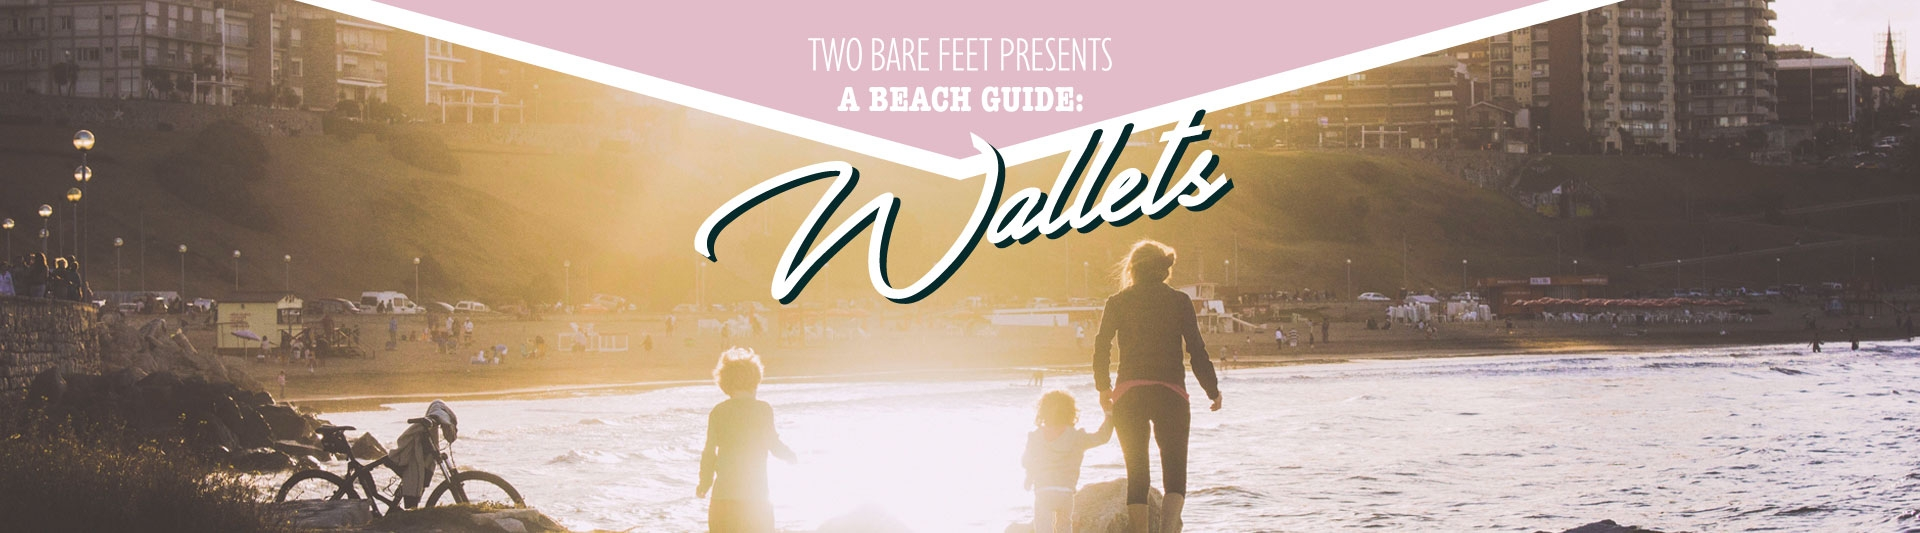 wallets banner